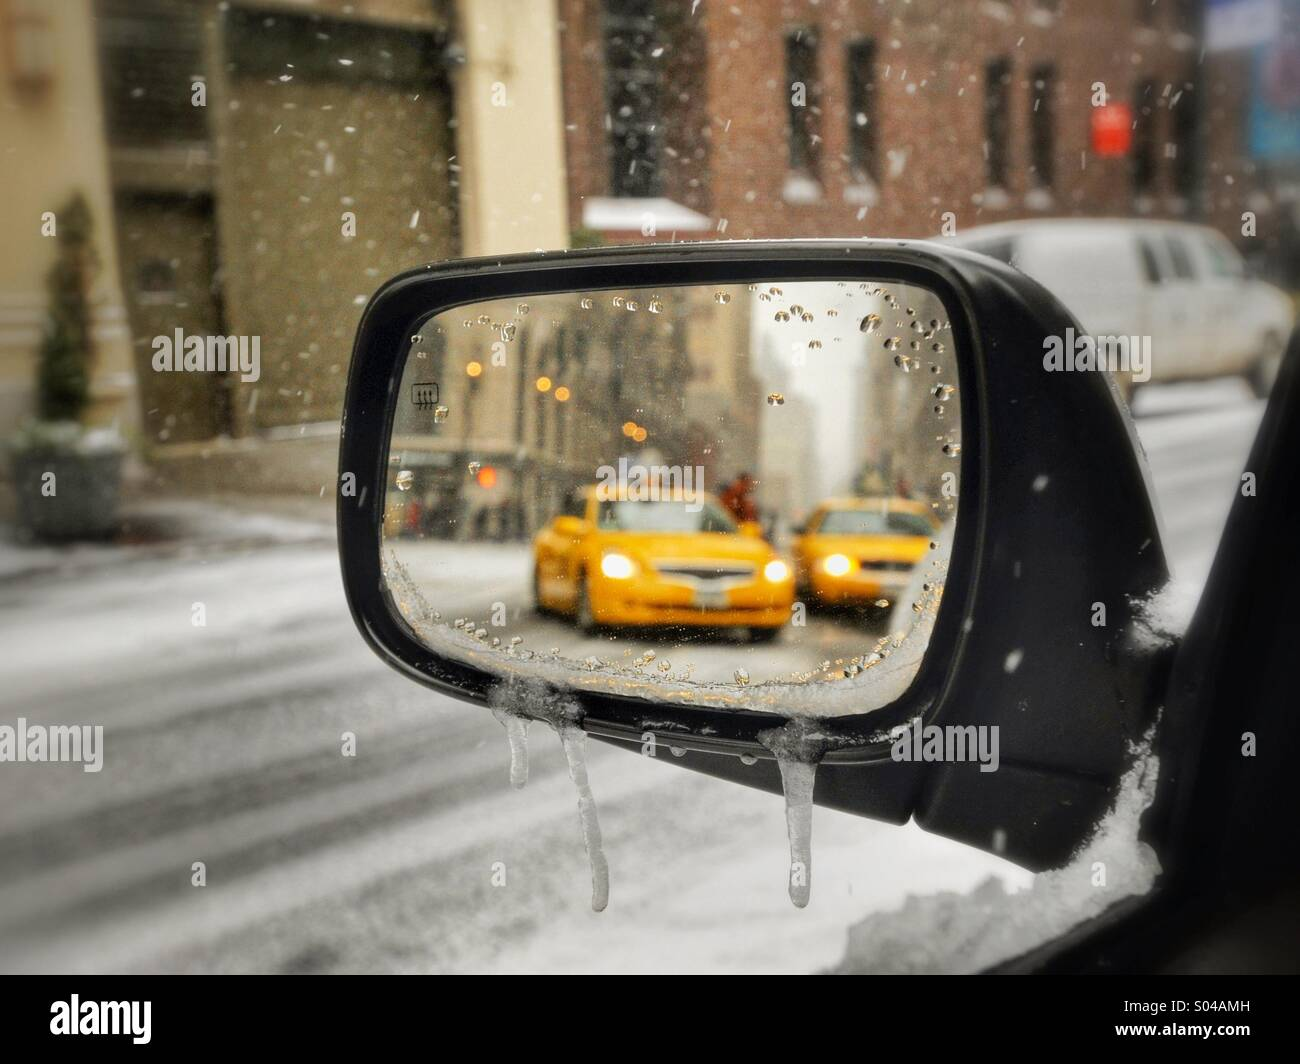 Looking into car rearview mirror at taxicabs on New York City Street on snowy day - Stock Image